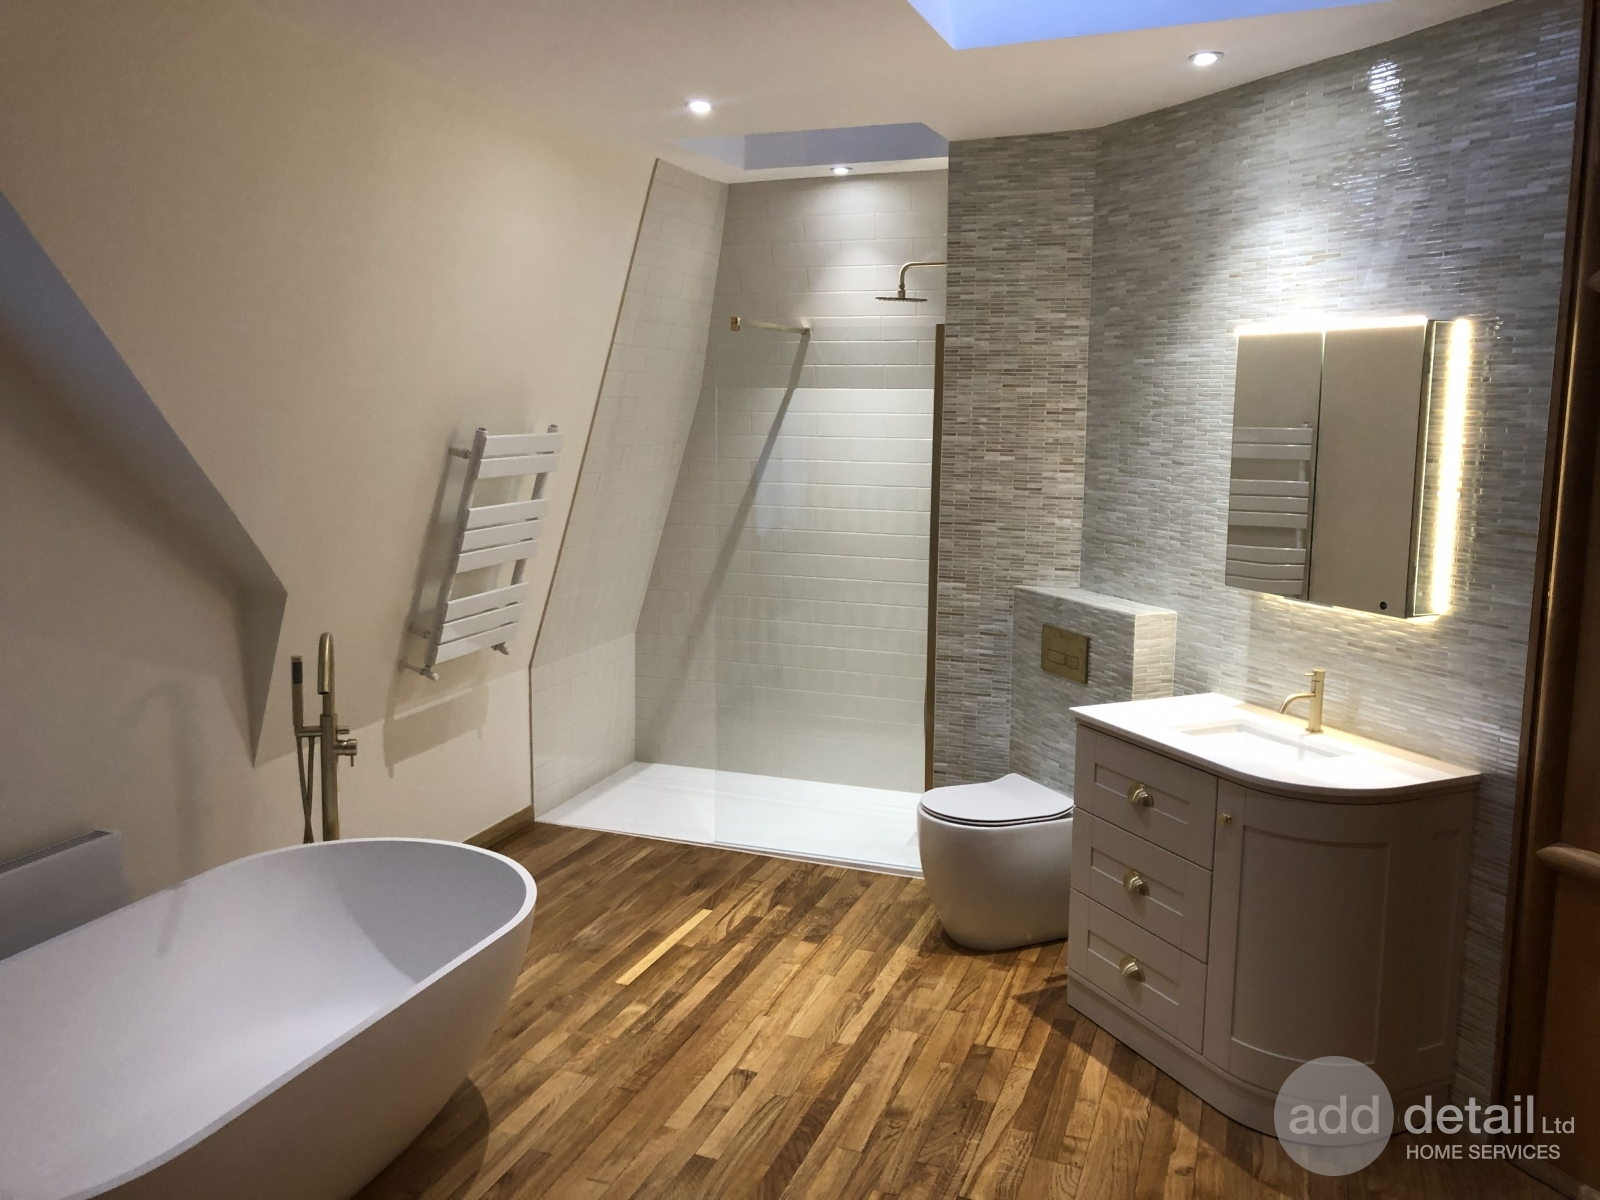 Large bathroom refurbishment in Muswell Hill, London. - Central London - London